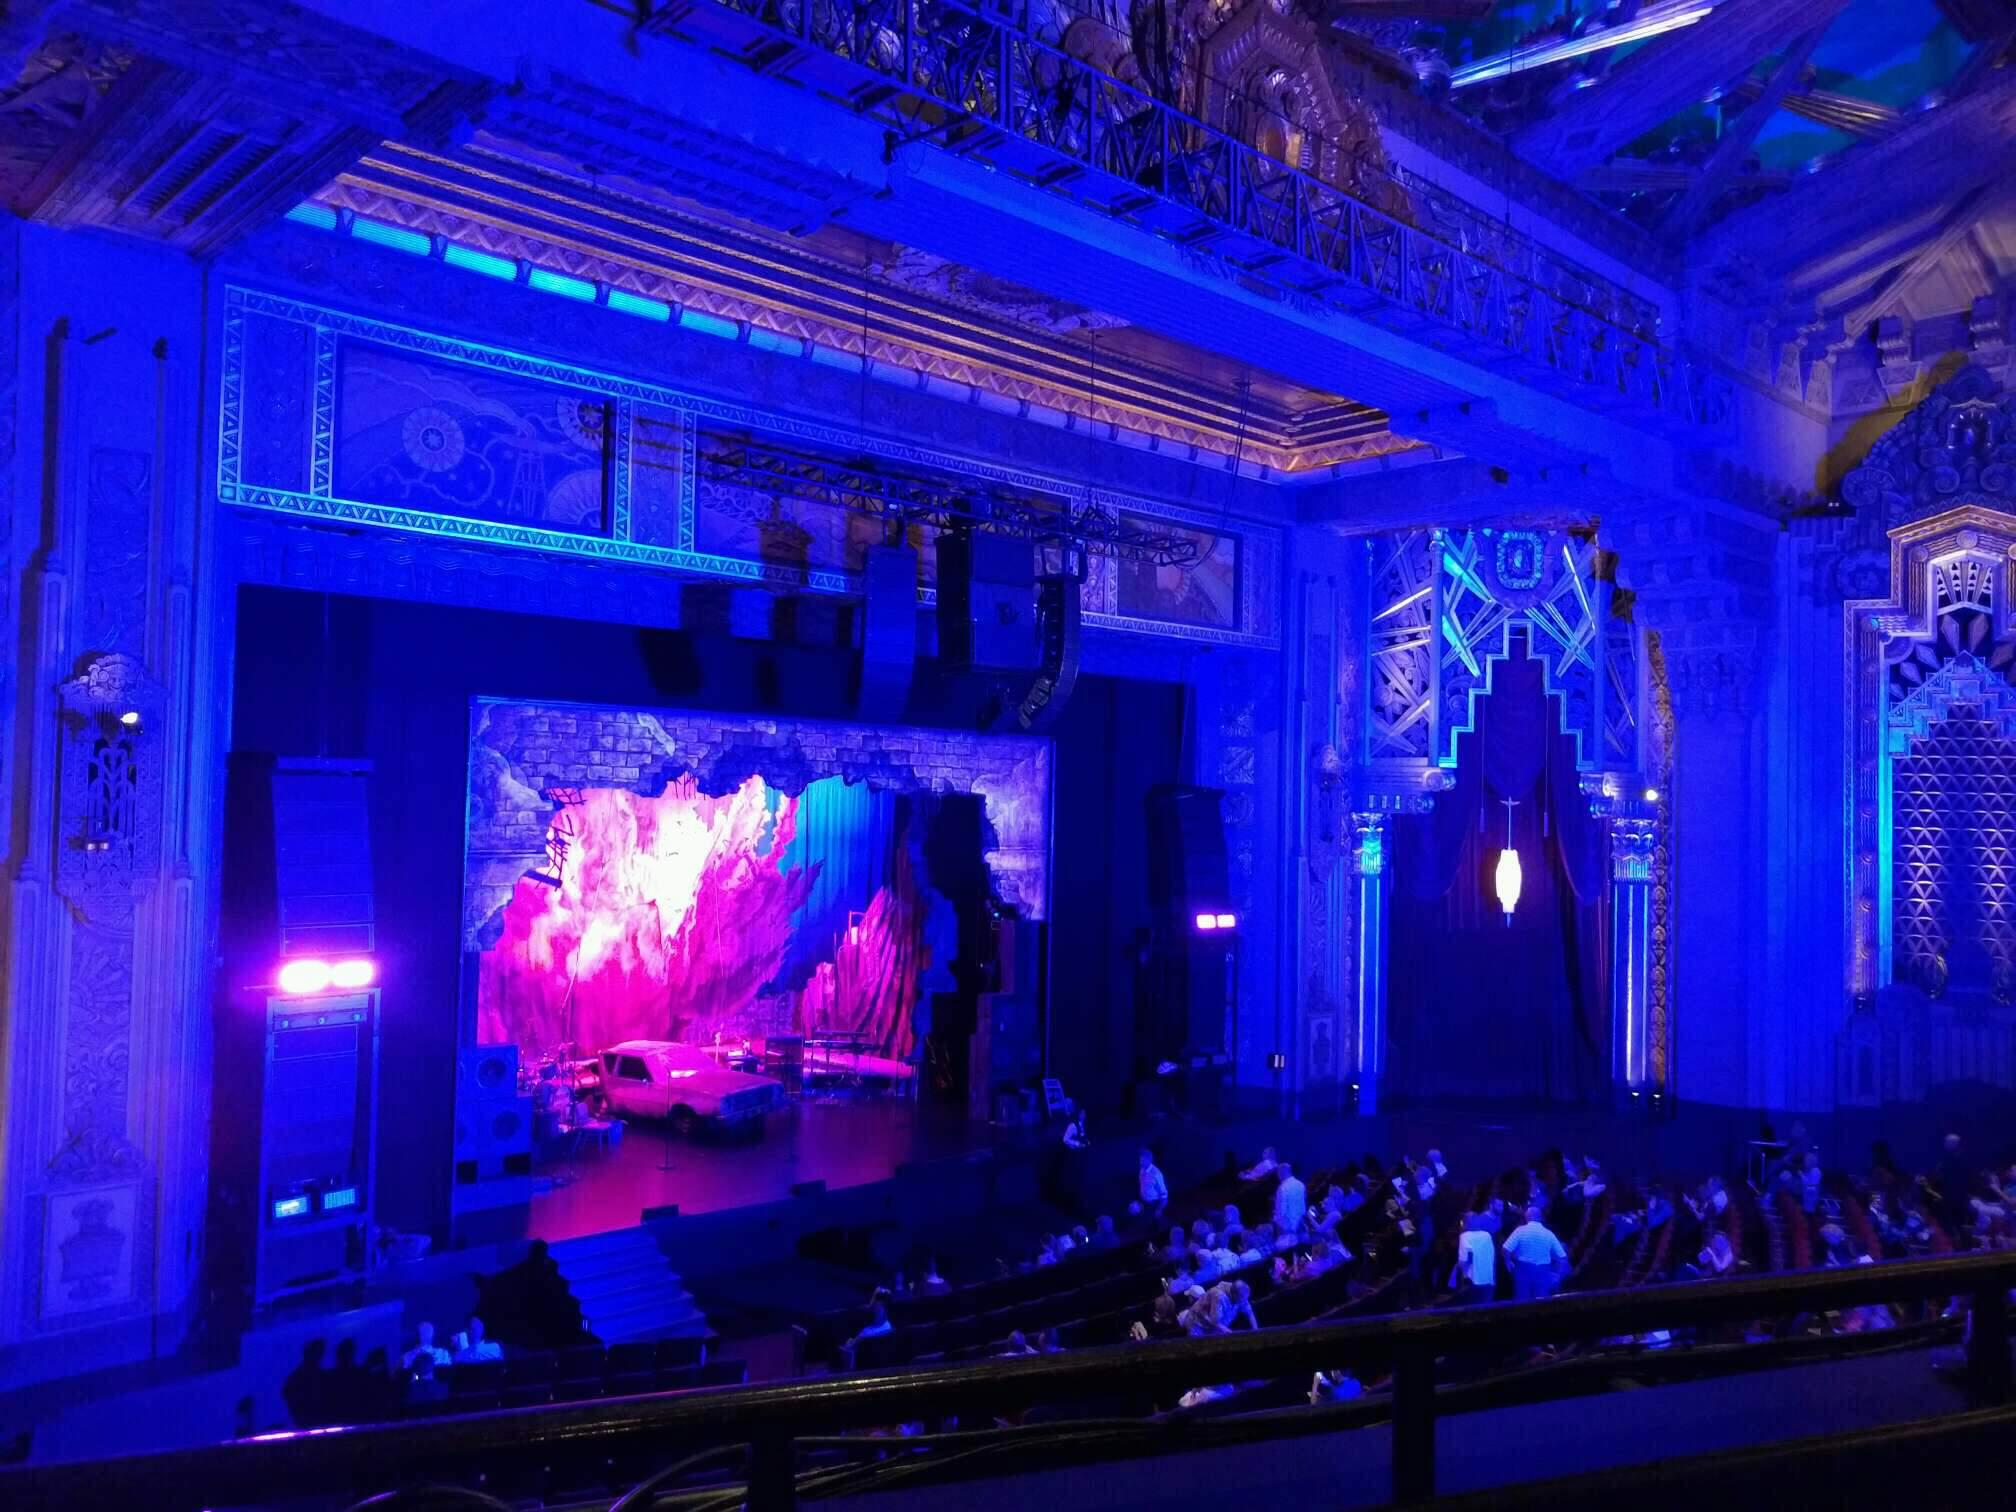 Hollywood Pantages Theatre Section Mezzanine L Row b Seat 9